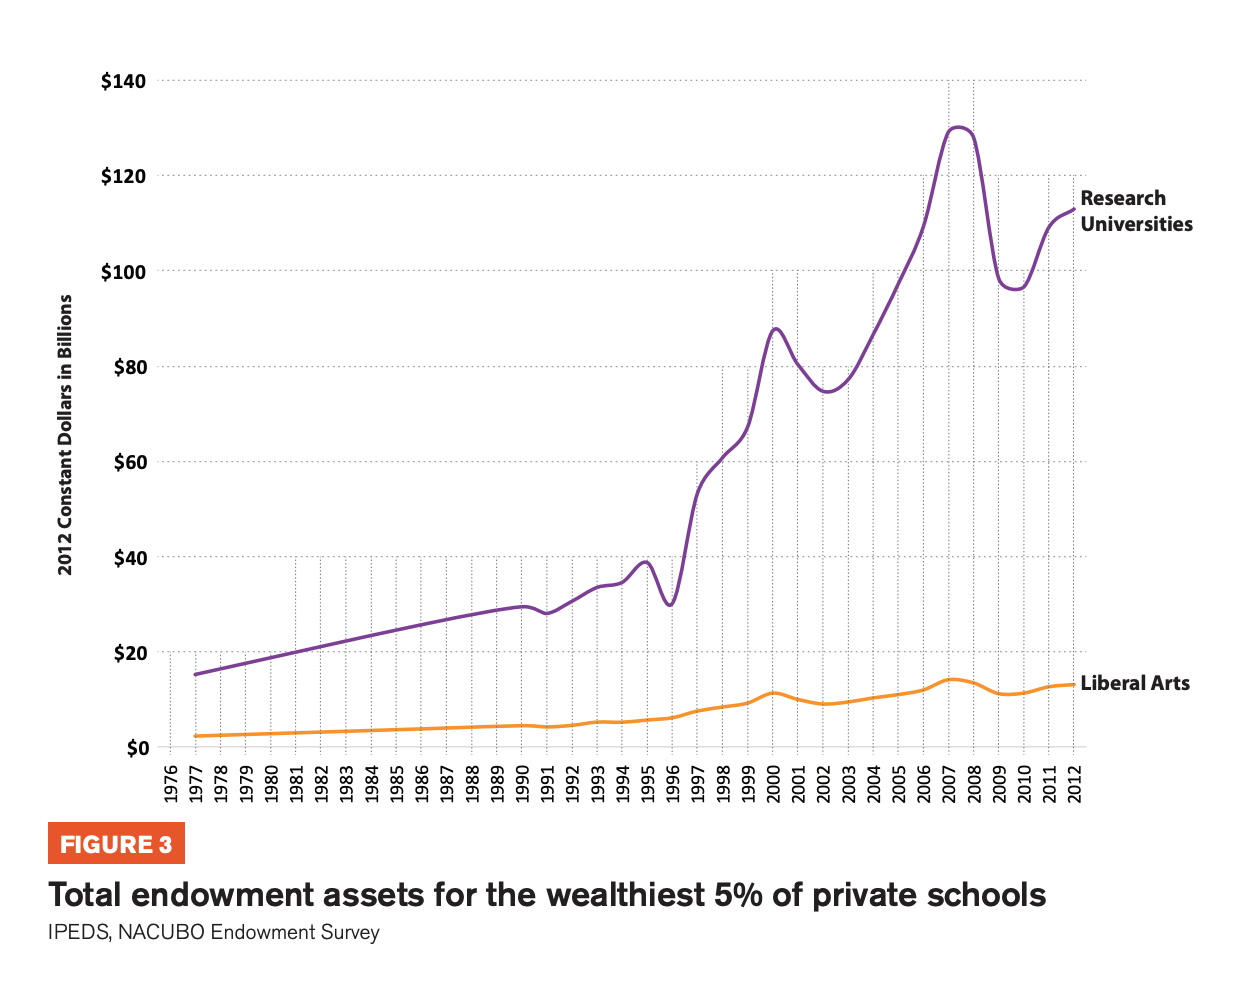 Figure 3 includes a graph showing the Total endowment assets for the wealthiest 5% of private schools